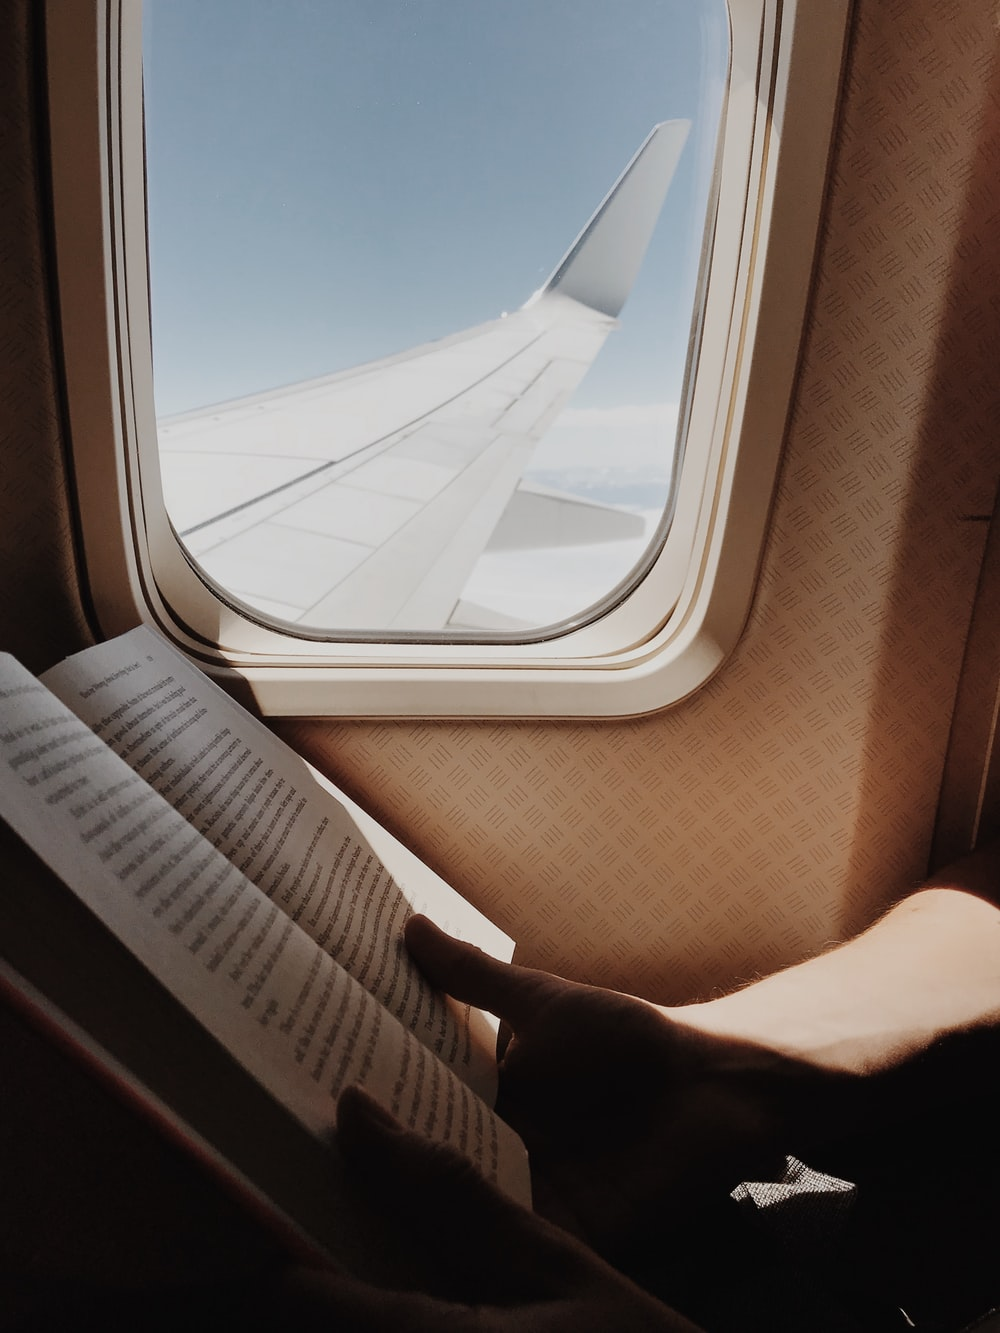 person reading book beside airplane window